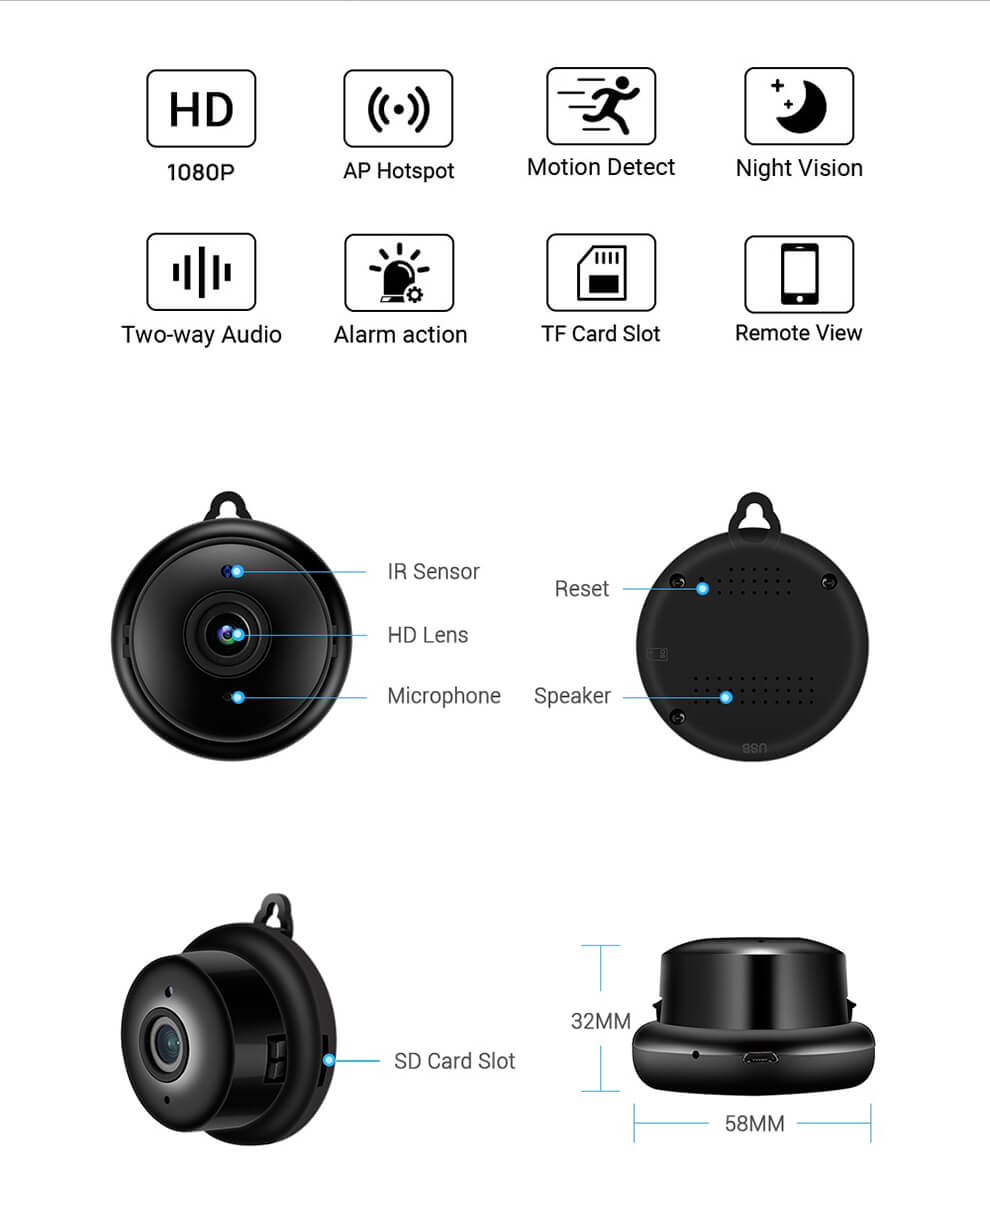 Mini Wireless WiFi Camera Features